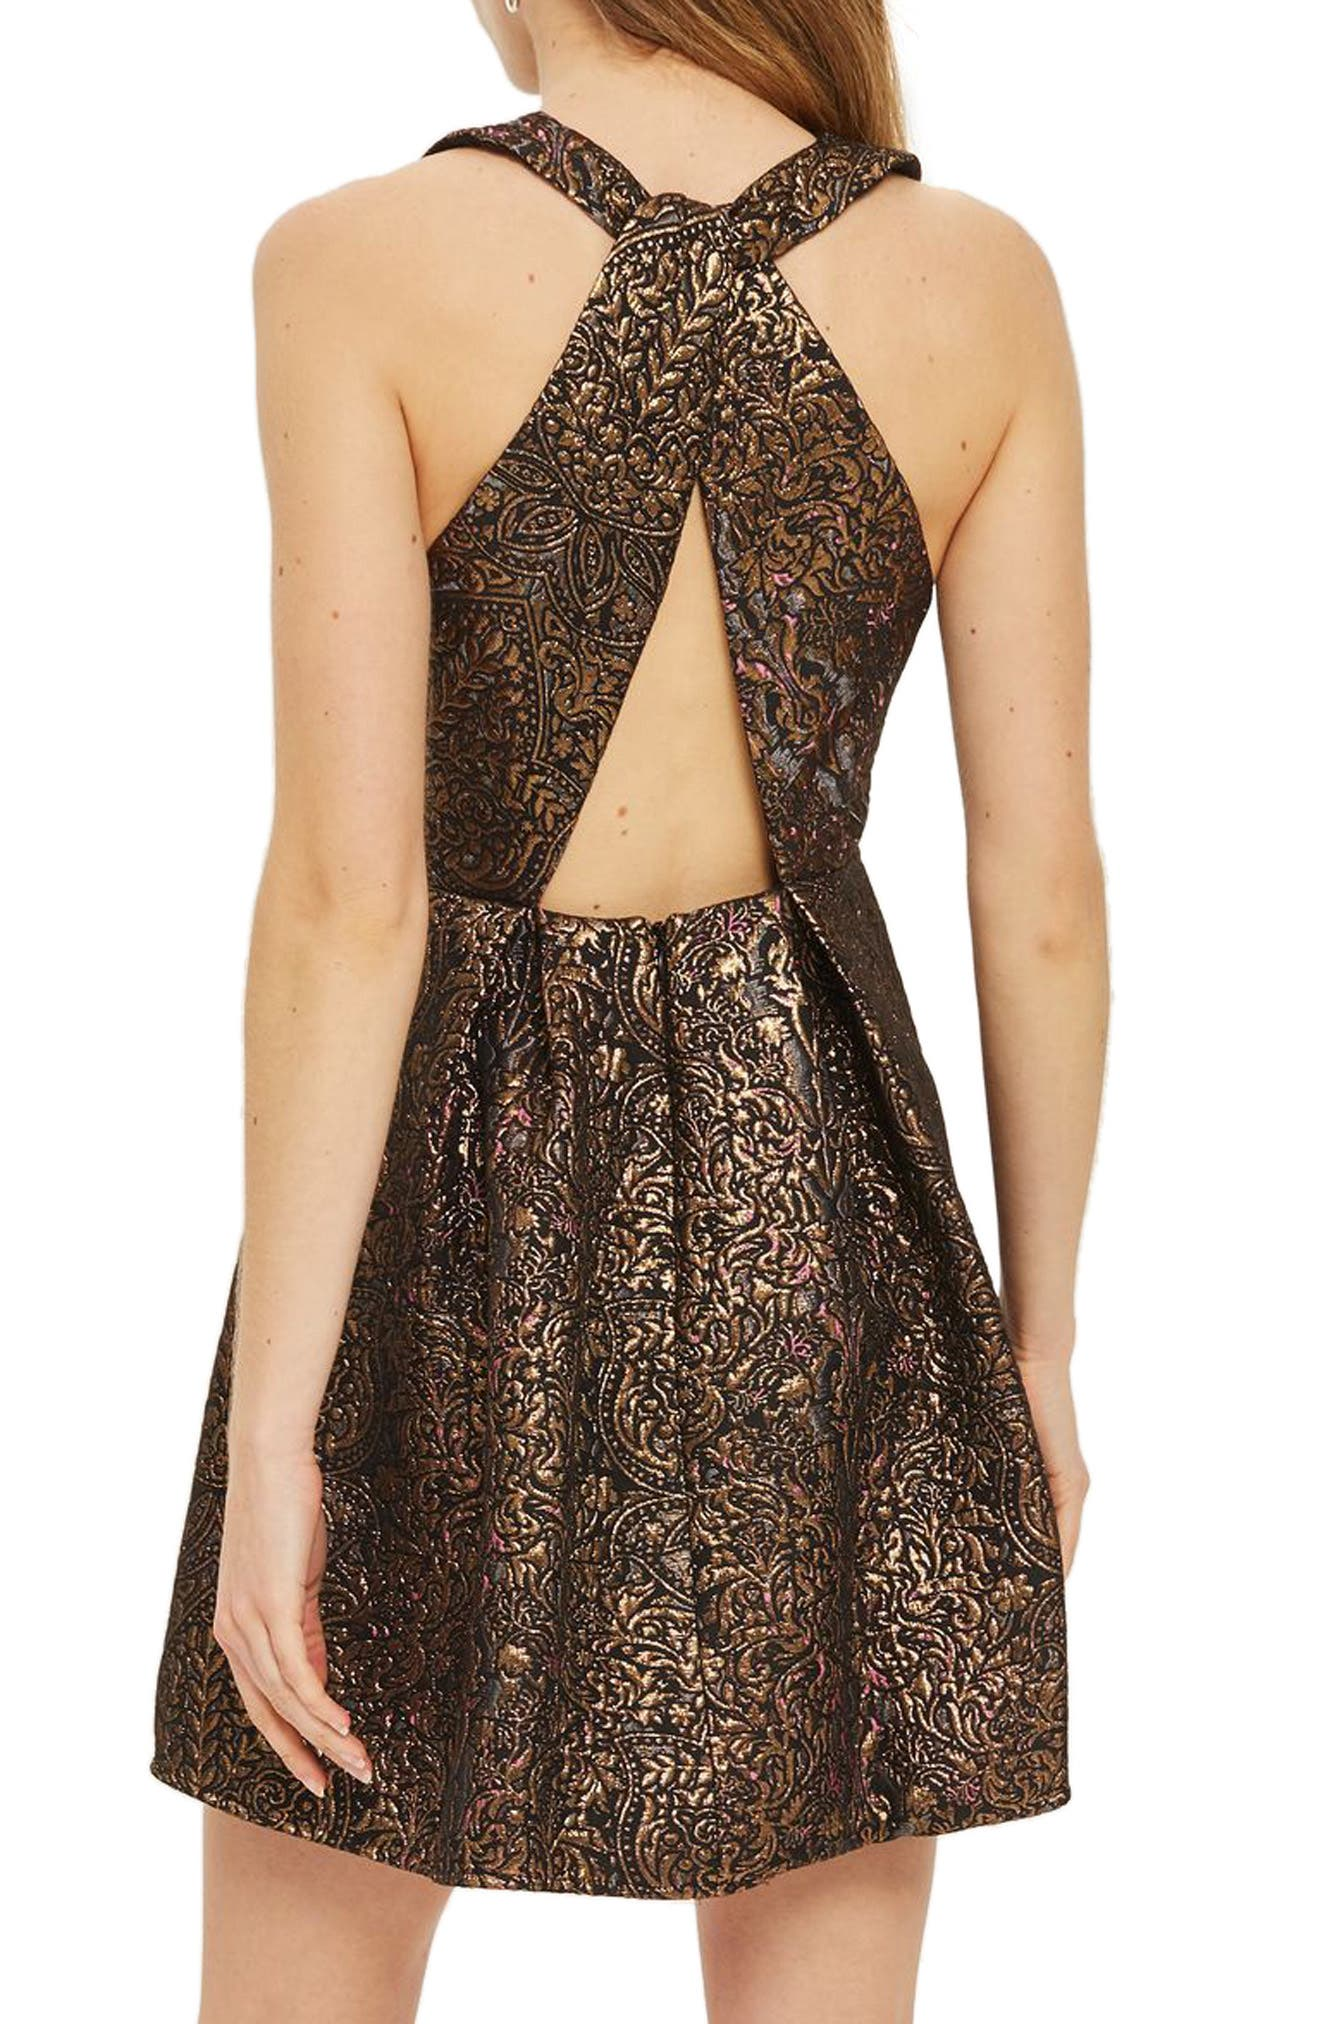 Opulent Jacquard Skater Dress,                             Alternate thumbnail 2, color,                             220